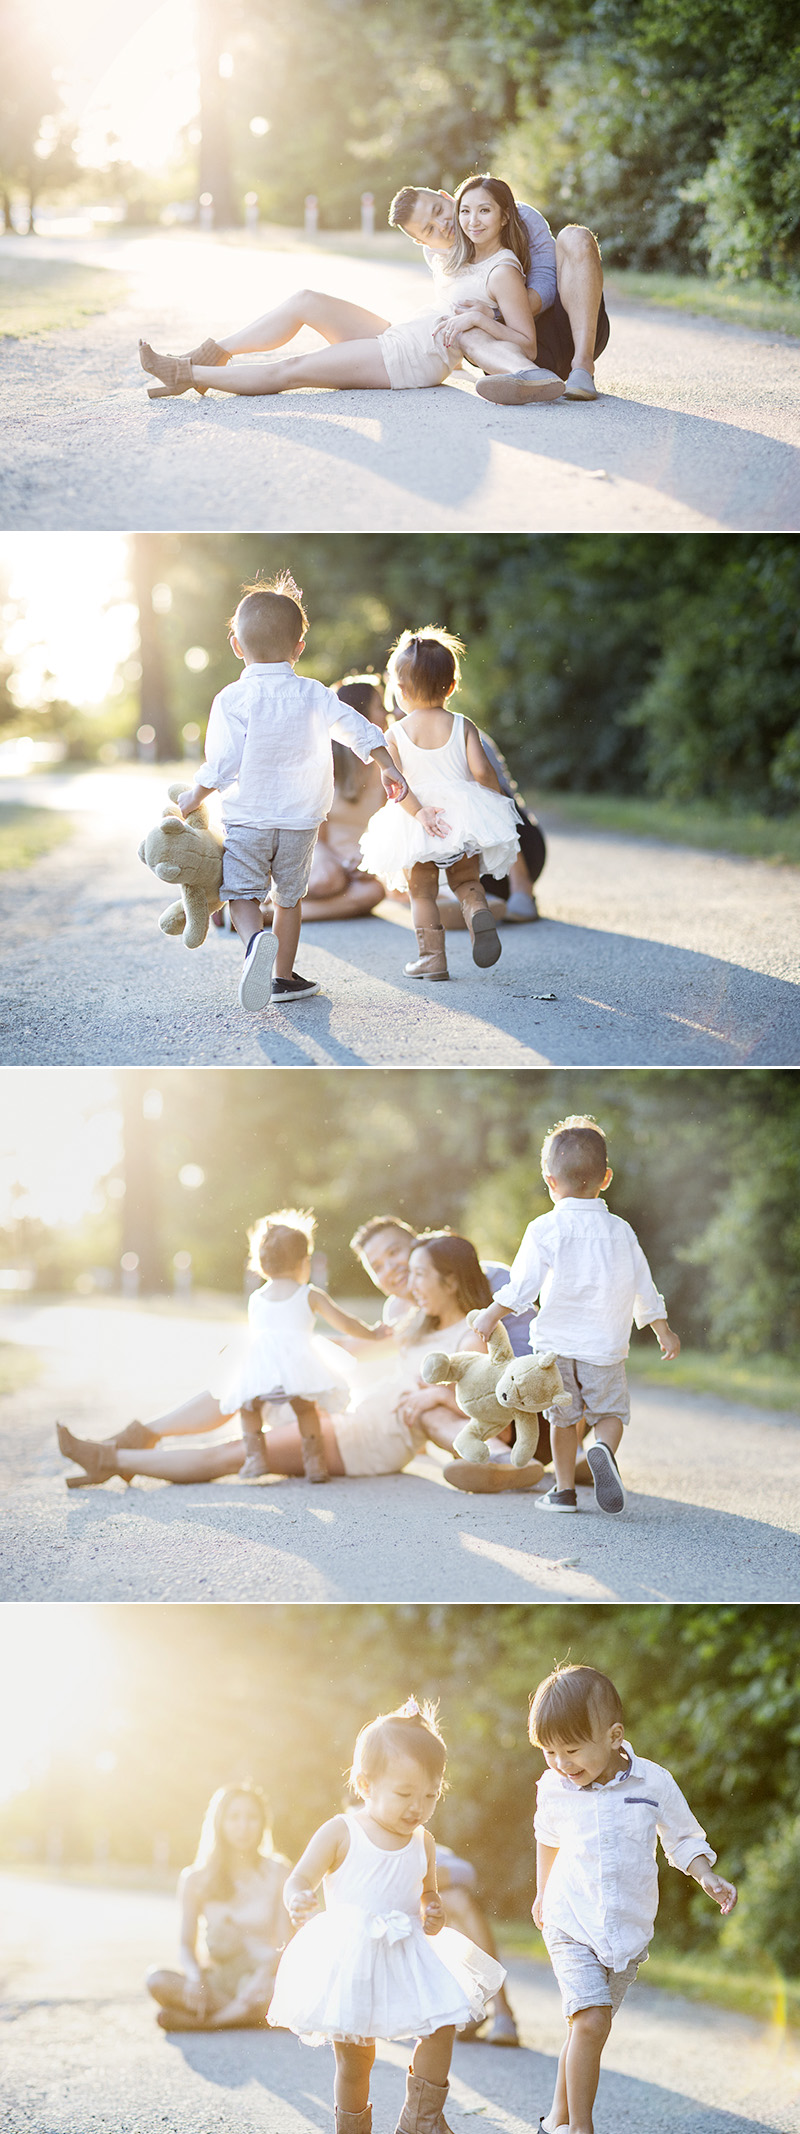 maru photography, vancouver lifestyle photographer, vancouver family photographer, vancouver maternity photograper, maternity photography, fraser valley lifestyle photographer